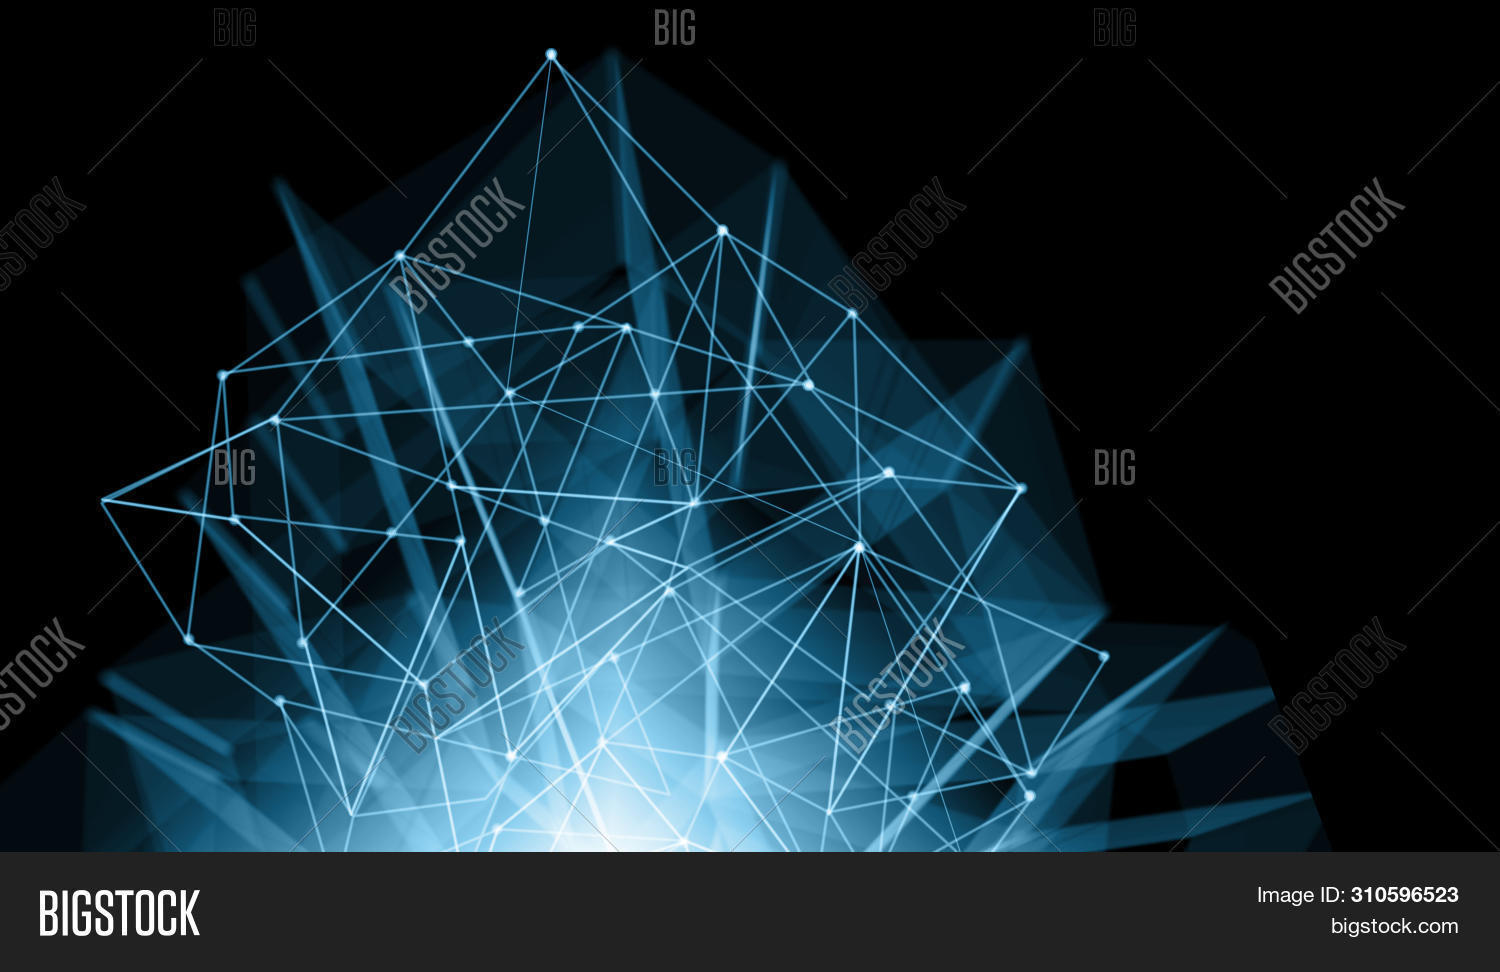 abstract,art,atom,background,blue,business,chaoscircle,cloud,communication,computer,concept,connect,connection,connectivity,creative,cyberspace,data,design,digital,element,futuristic,geometric,global,graphic,grid,illustration,internet,line,media,mesh,modeling,modern,net,network,networking,pattern,polygon,research,science,shape,social,space,structure,technical,technology,texture,triangle,web,wire